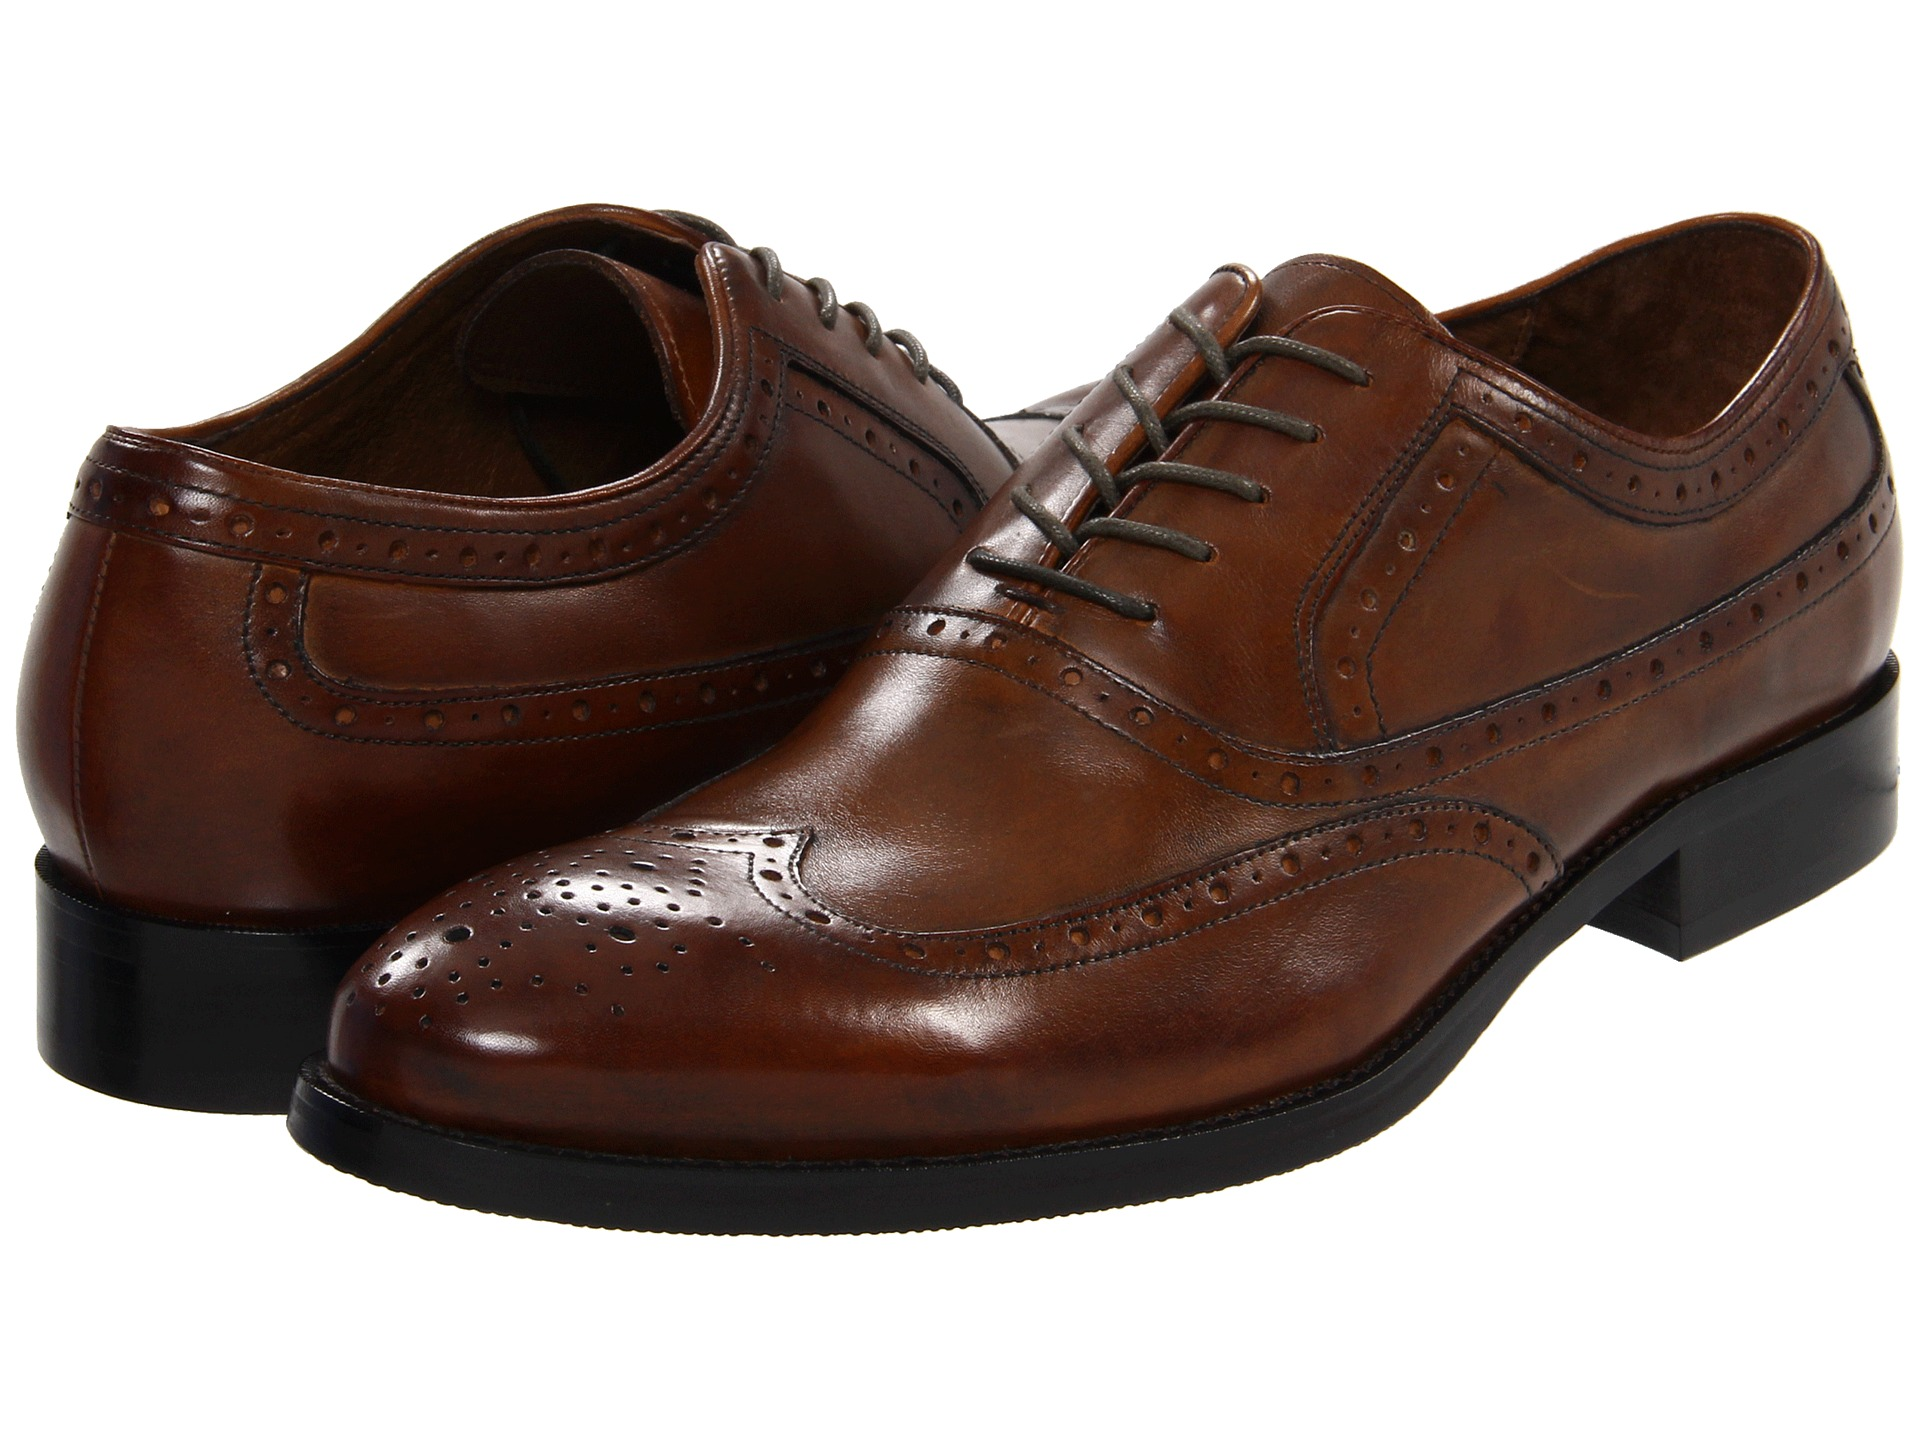 Johnston & Murphy Tyndall Wing Tip - Zappos.com Free Shipping BOTH